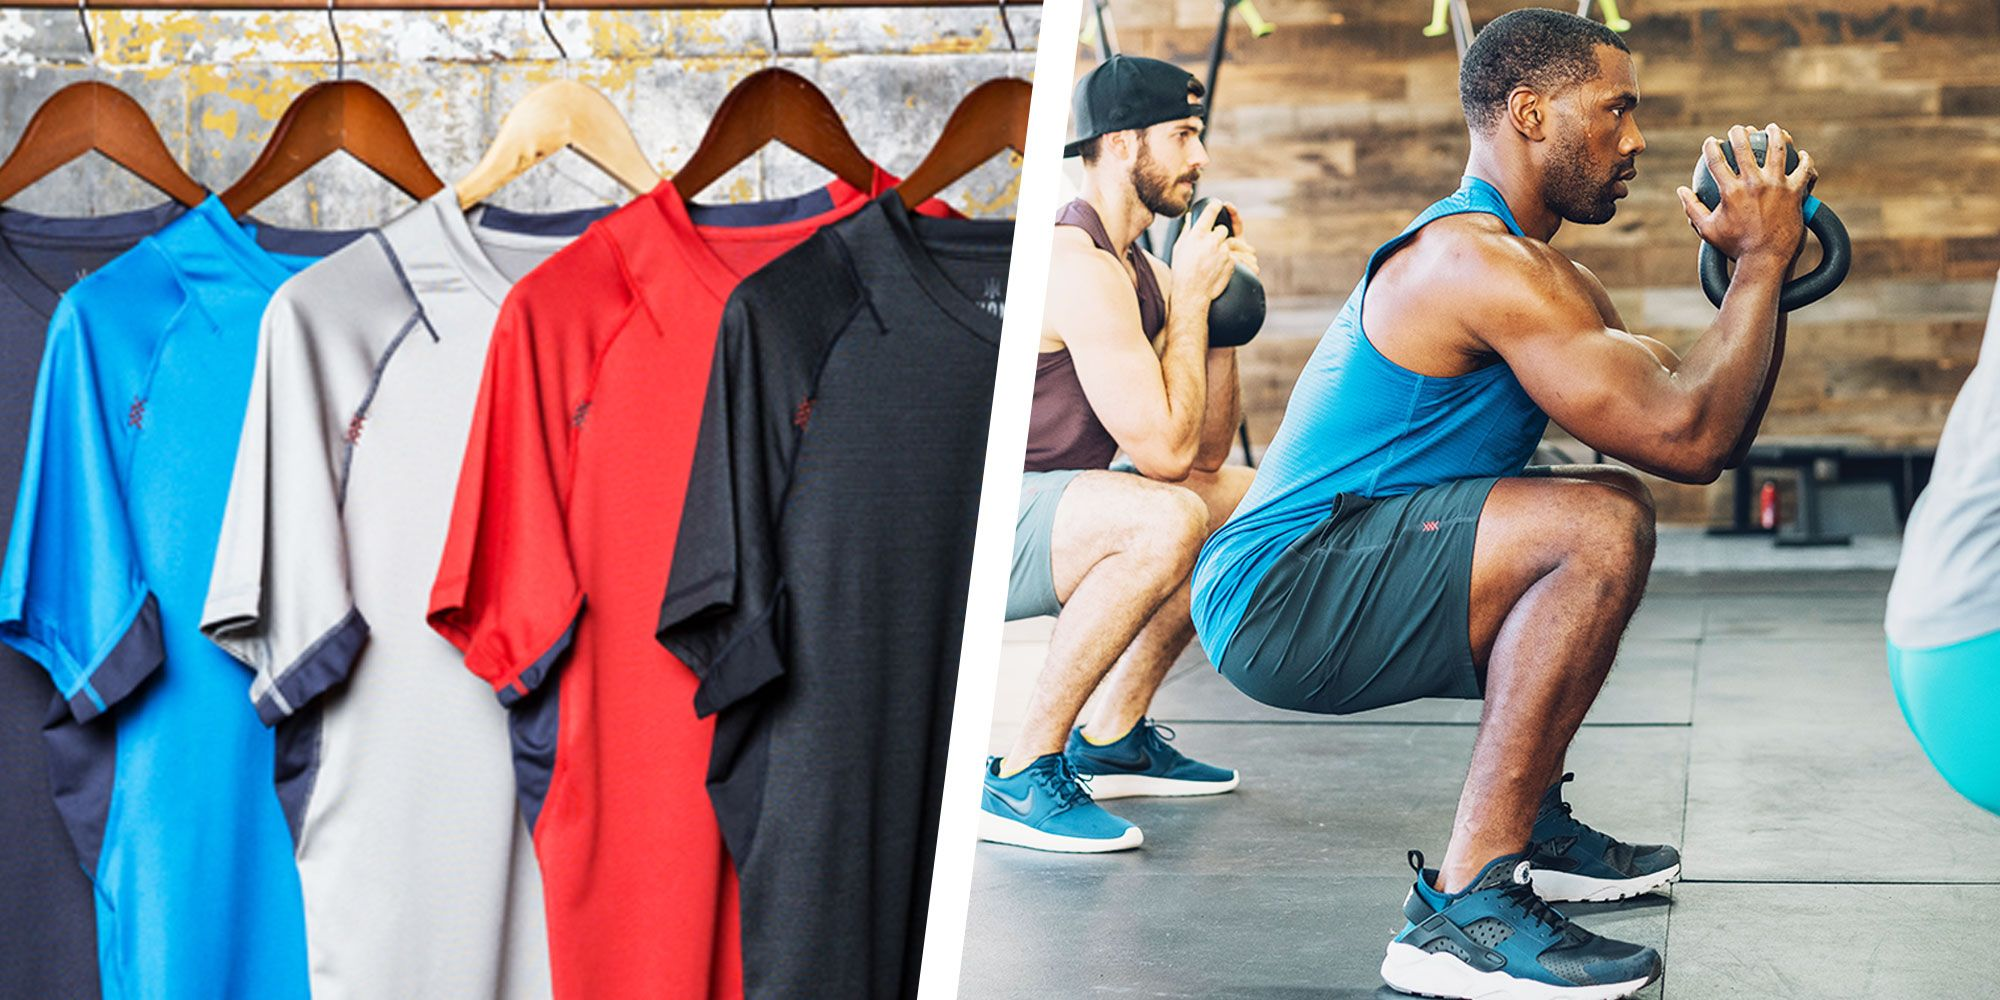 21 Best Workout Clothes for Men 2021 - Top Activewear Brands